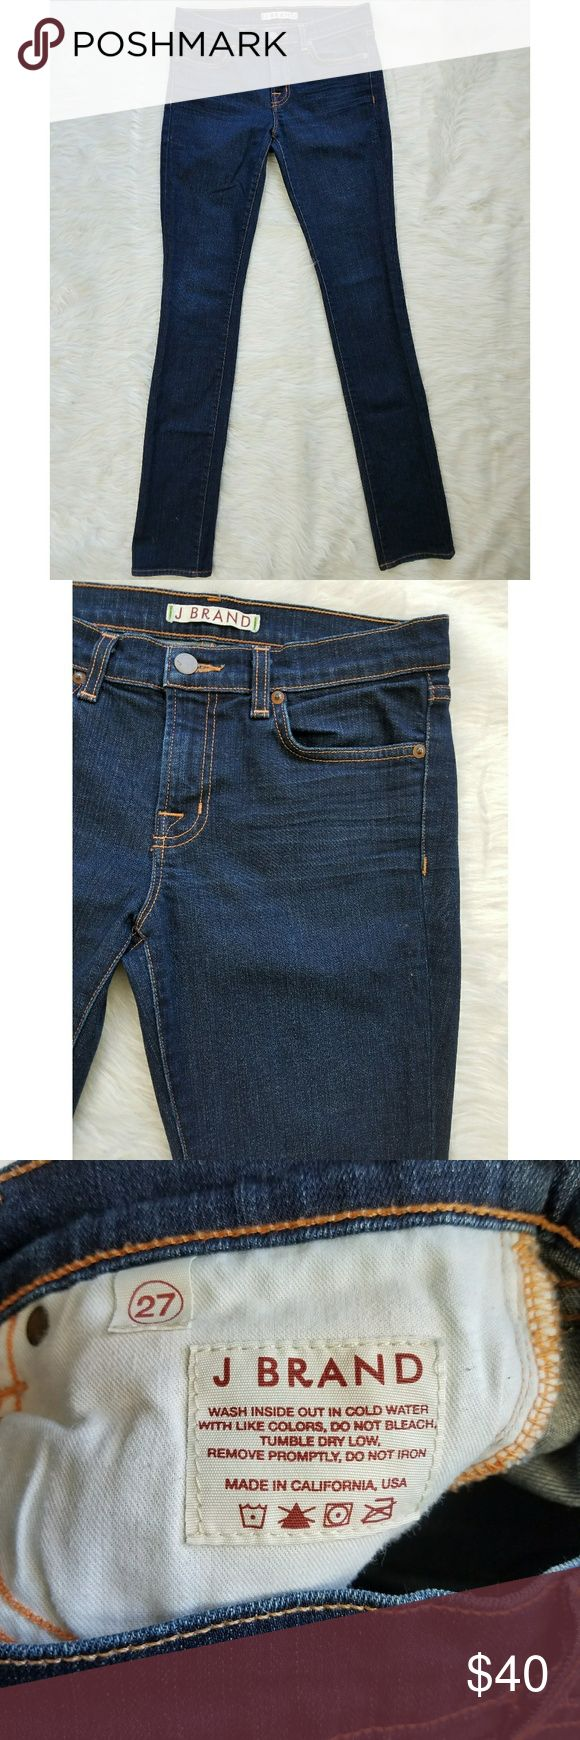 J Brand The Pencil Leg Straight Leg Jean Dark Wash Excellent condition, no stains or flaws. This brand is available at stores like Anthropologie  Reasonable offers will be considered, bundles are discounted. No trades. I can ship same or next day. J Brand Jeans Straight Leg